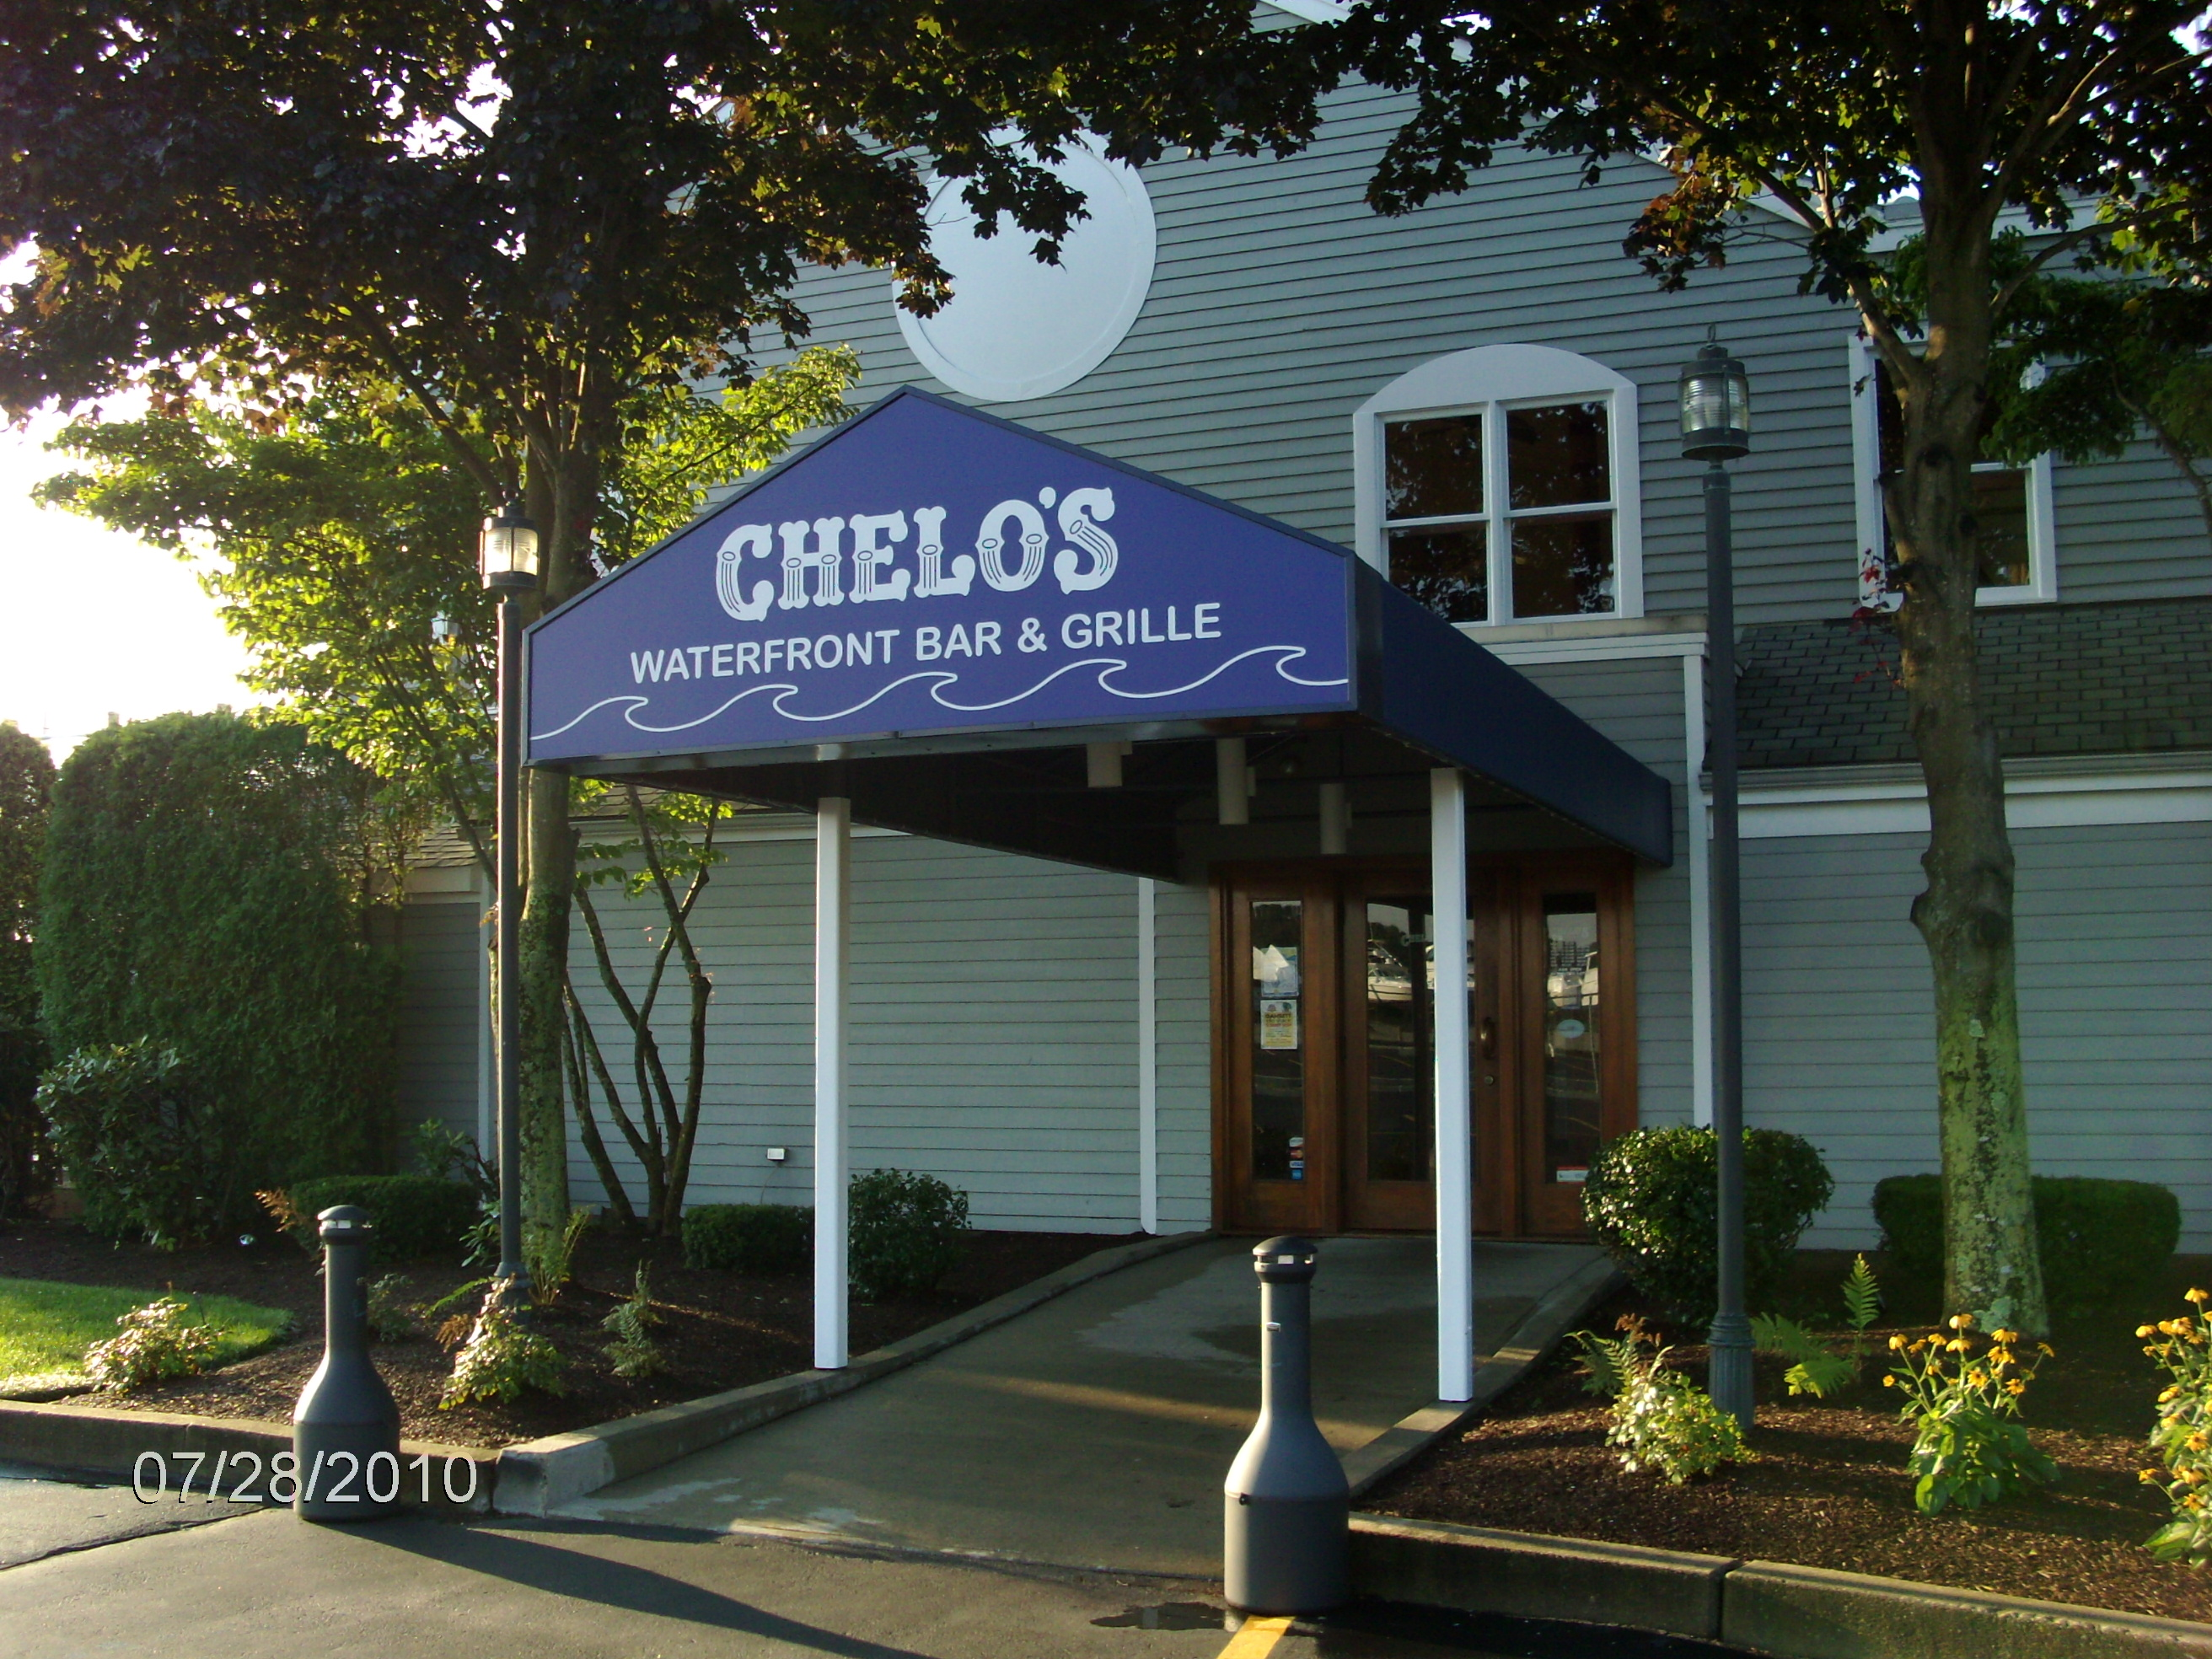 chelos awning sign